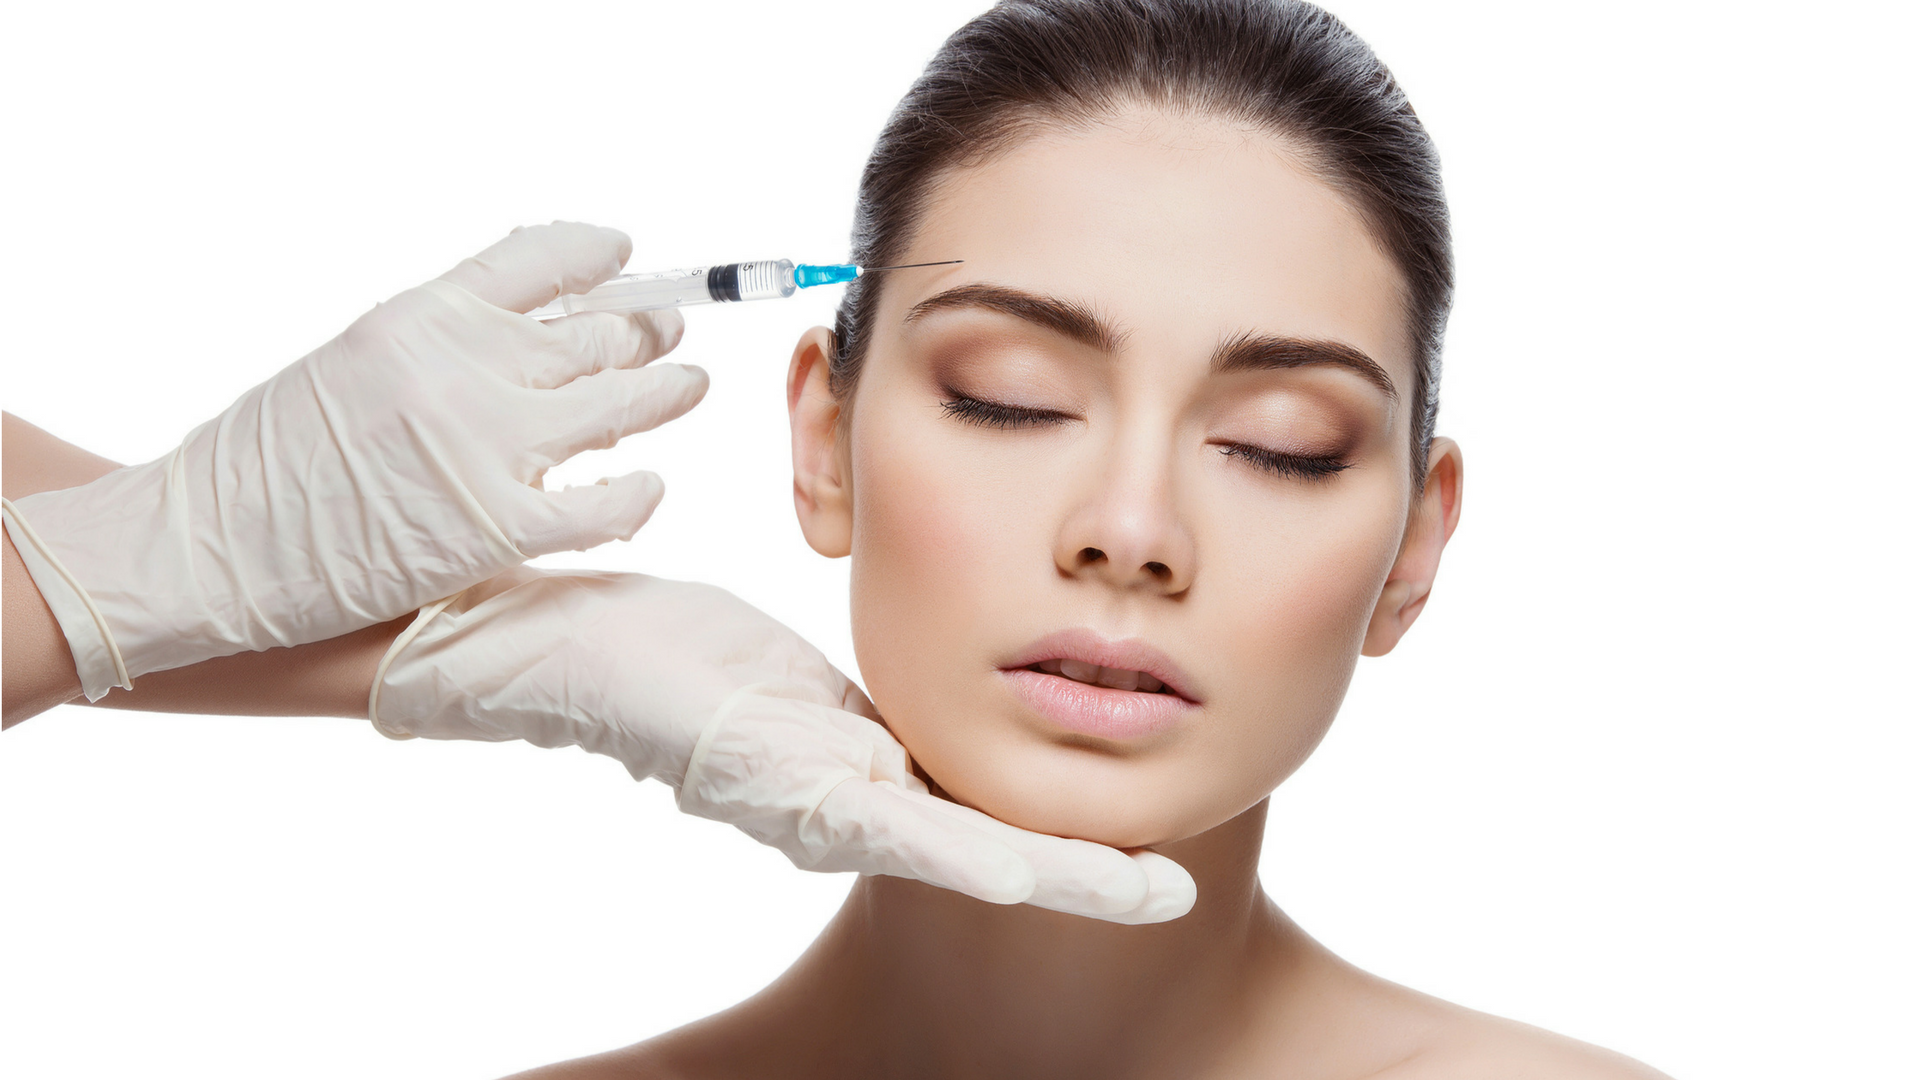 5 Things To Understand Before Getting Into Botox